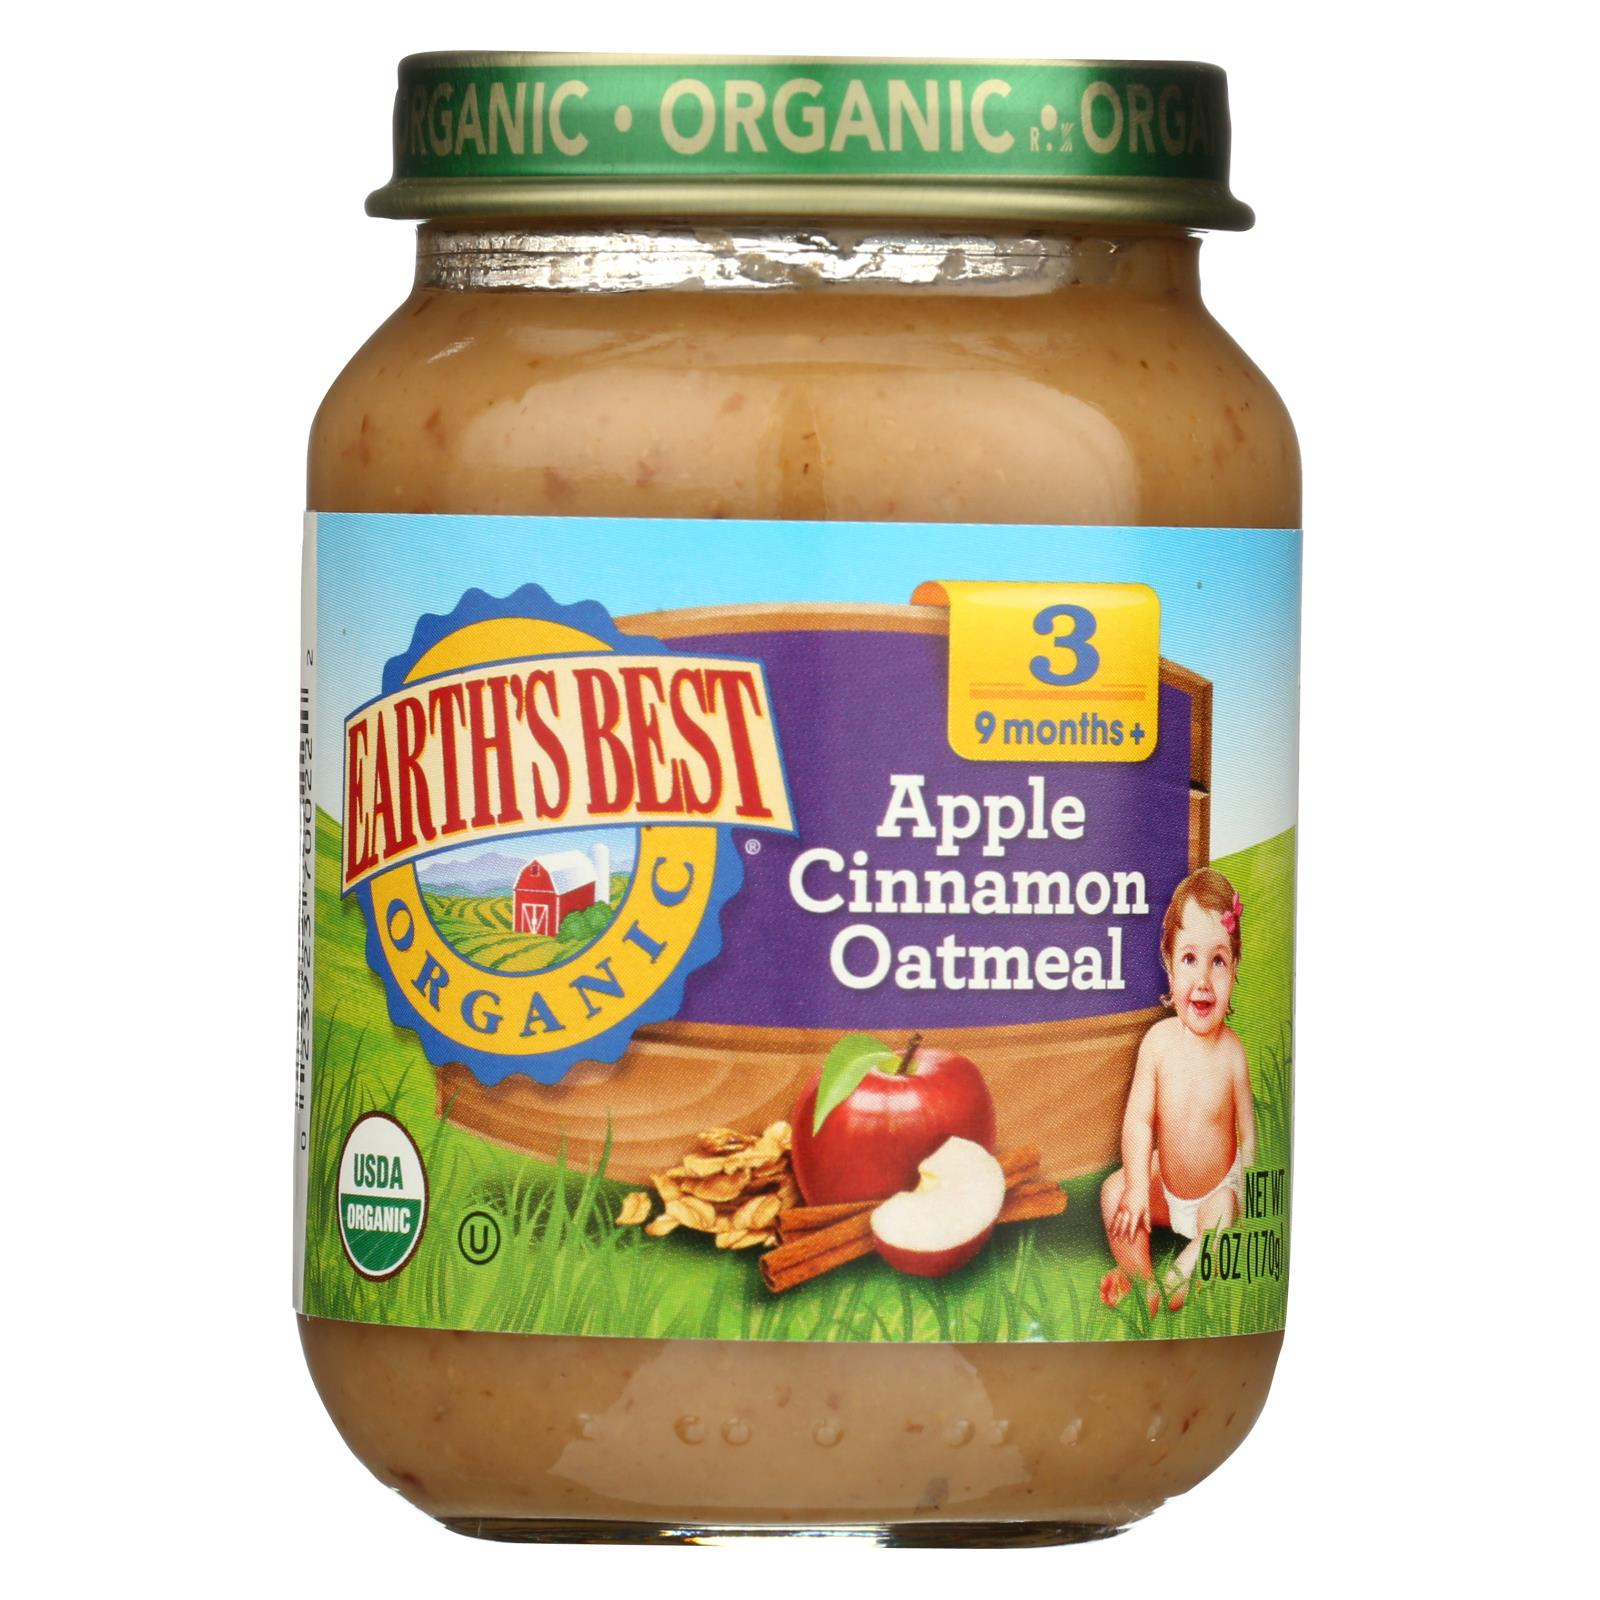 Earth's Best Organic Apple Cinnamon Oatmeal Baby Food - Stage 3 - Case Of 12 - 6 Oz. HG0177048